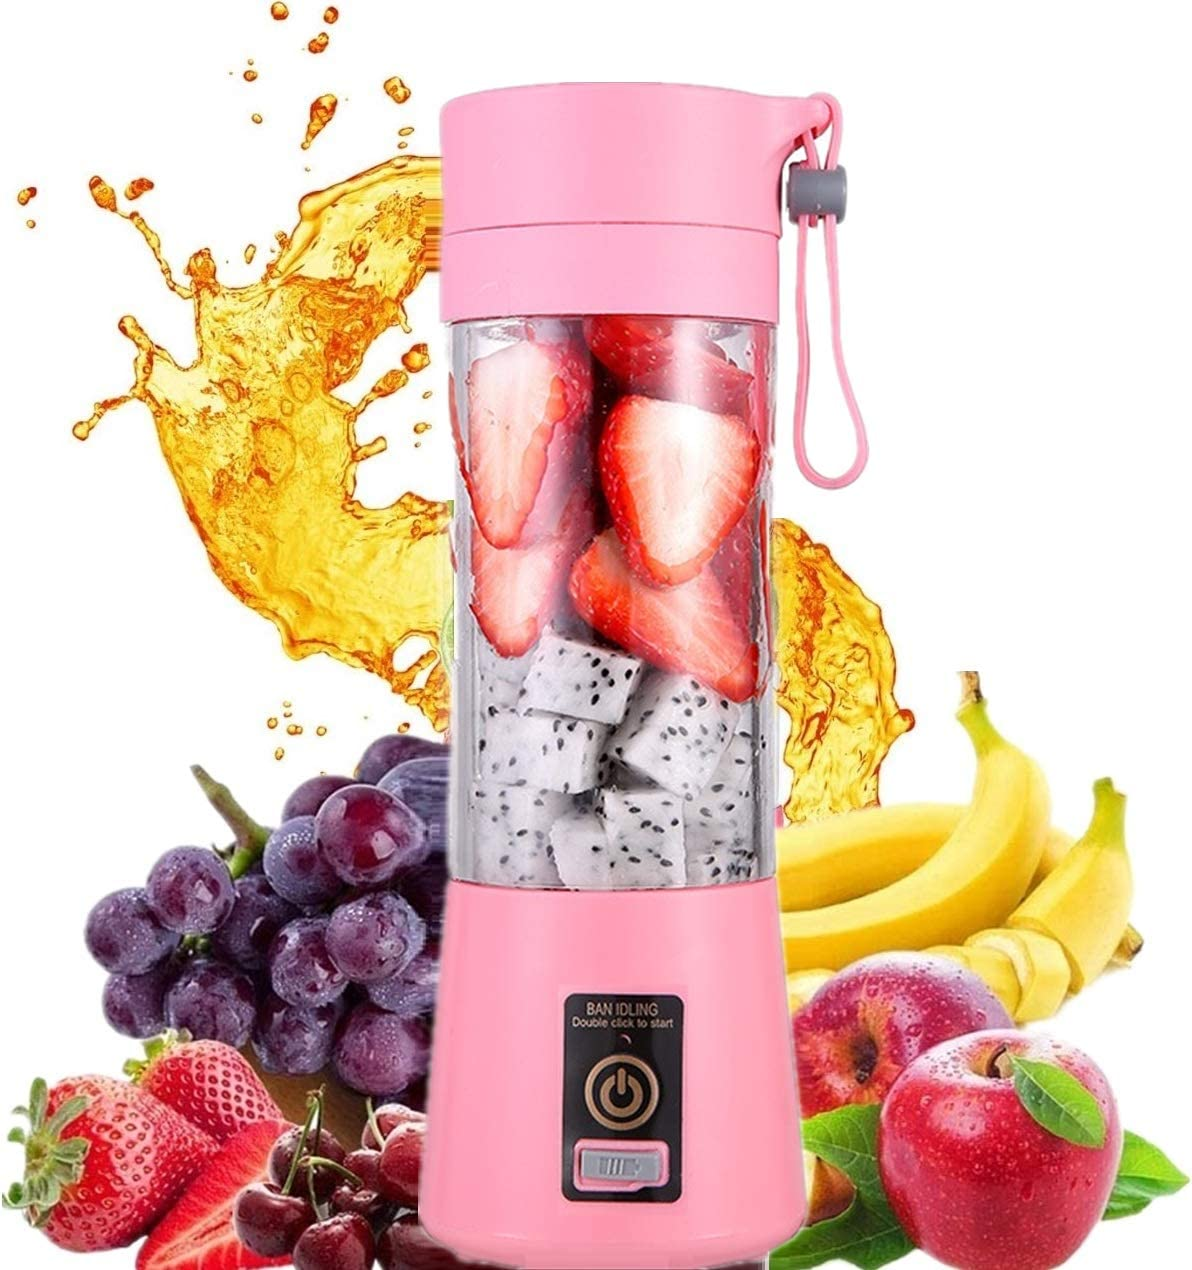 HANBO Electric Portable Juicer Blender Cup, Household Fruit Mixer with Six Blades in 3D, 380ml USB Rechargeable Juice Blender Magnetic Secure Switch Electric Fruit Mixer (Pink)